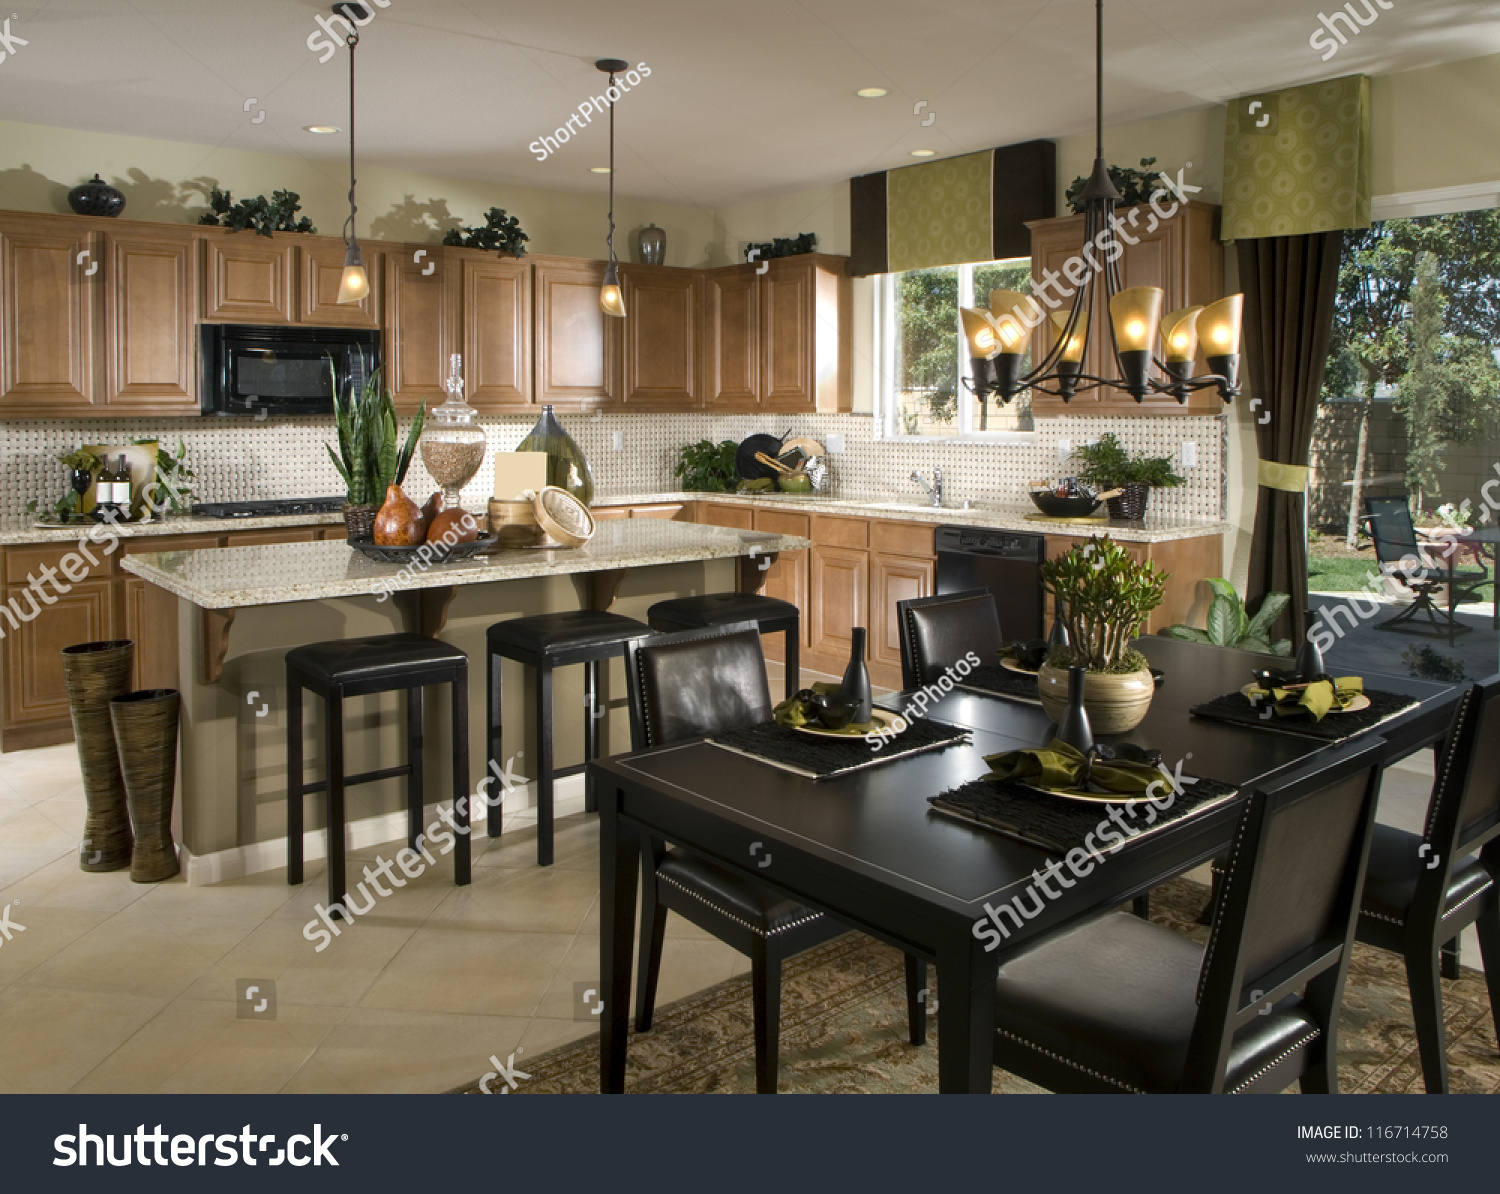 Kitchen, Interior Design, Architecture, Stock Images,Photos Of Living Room,  Bathroom